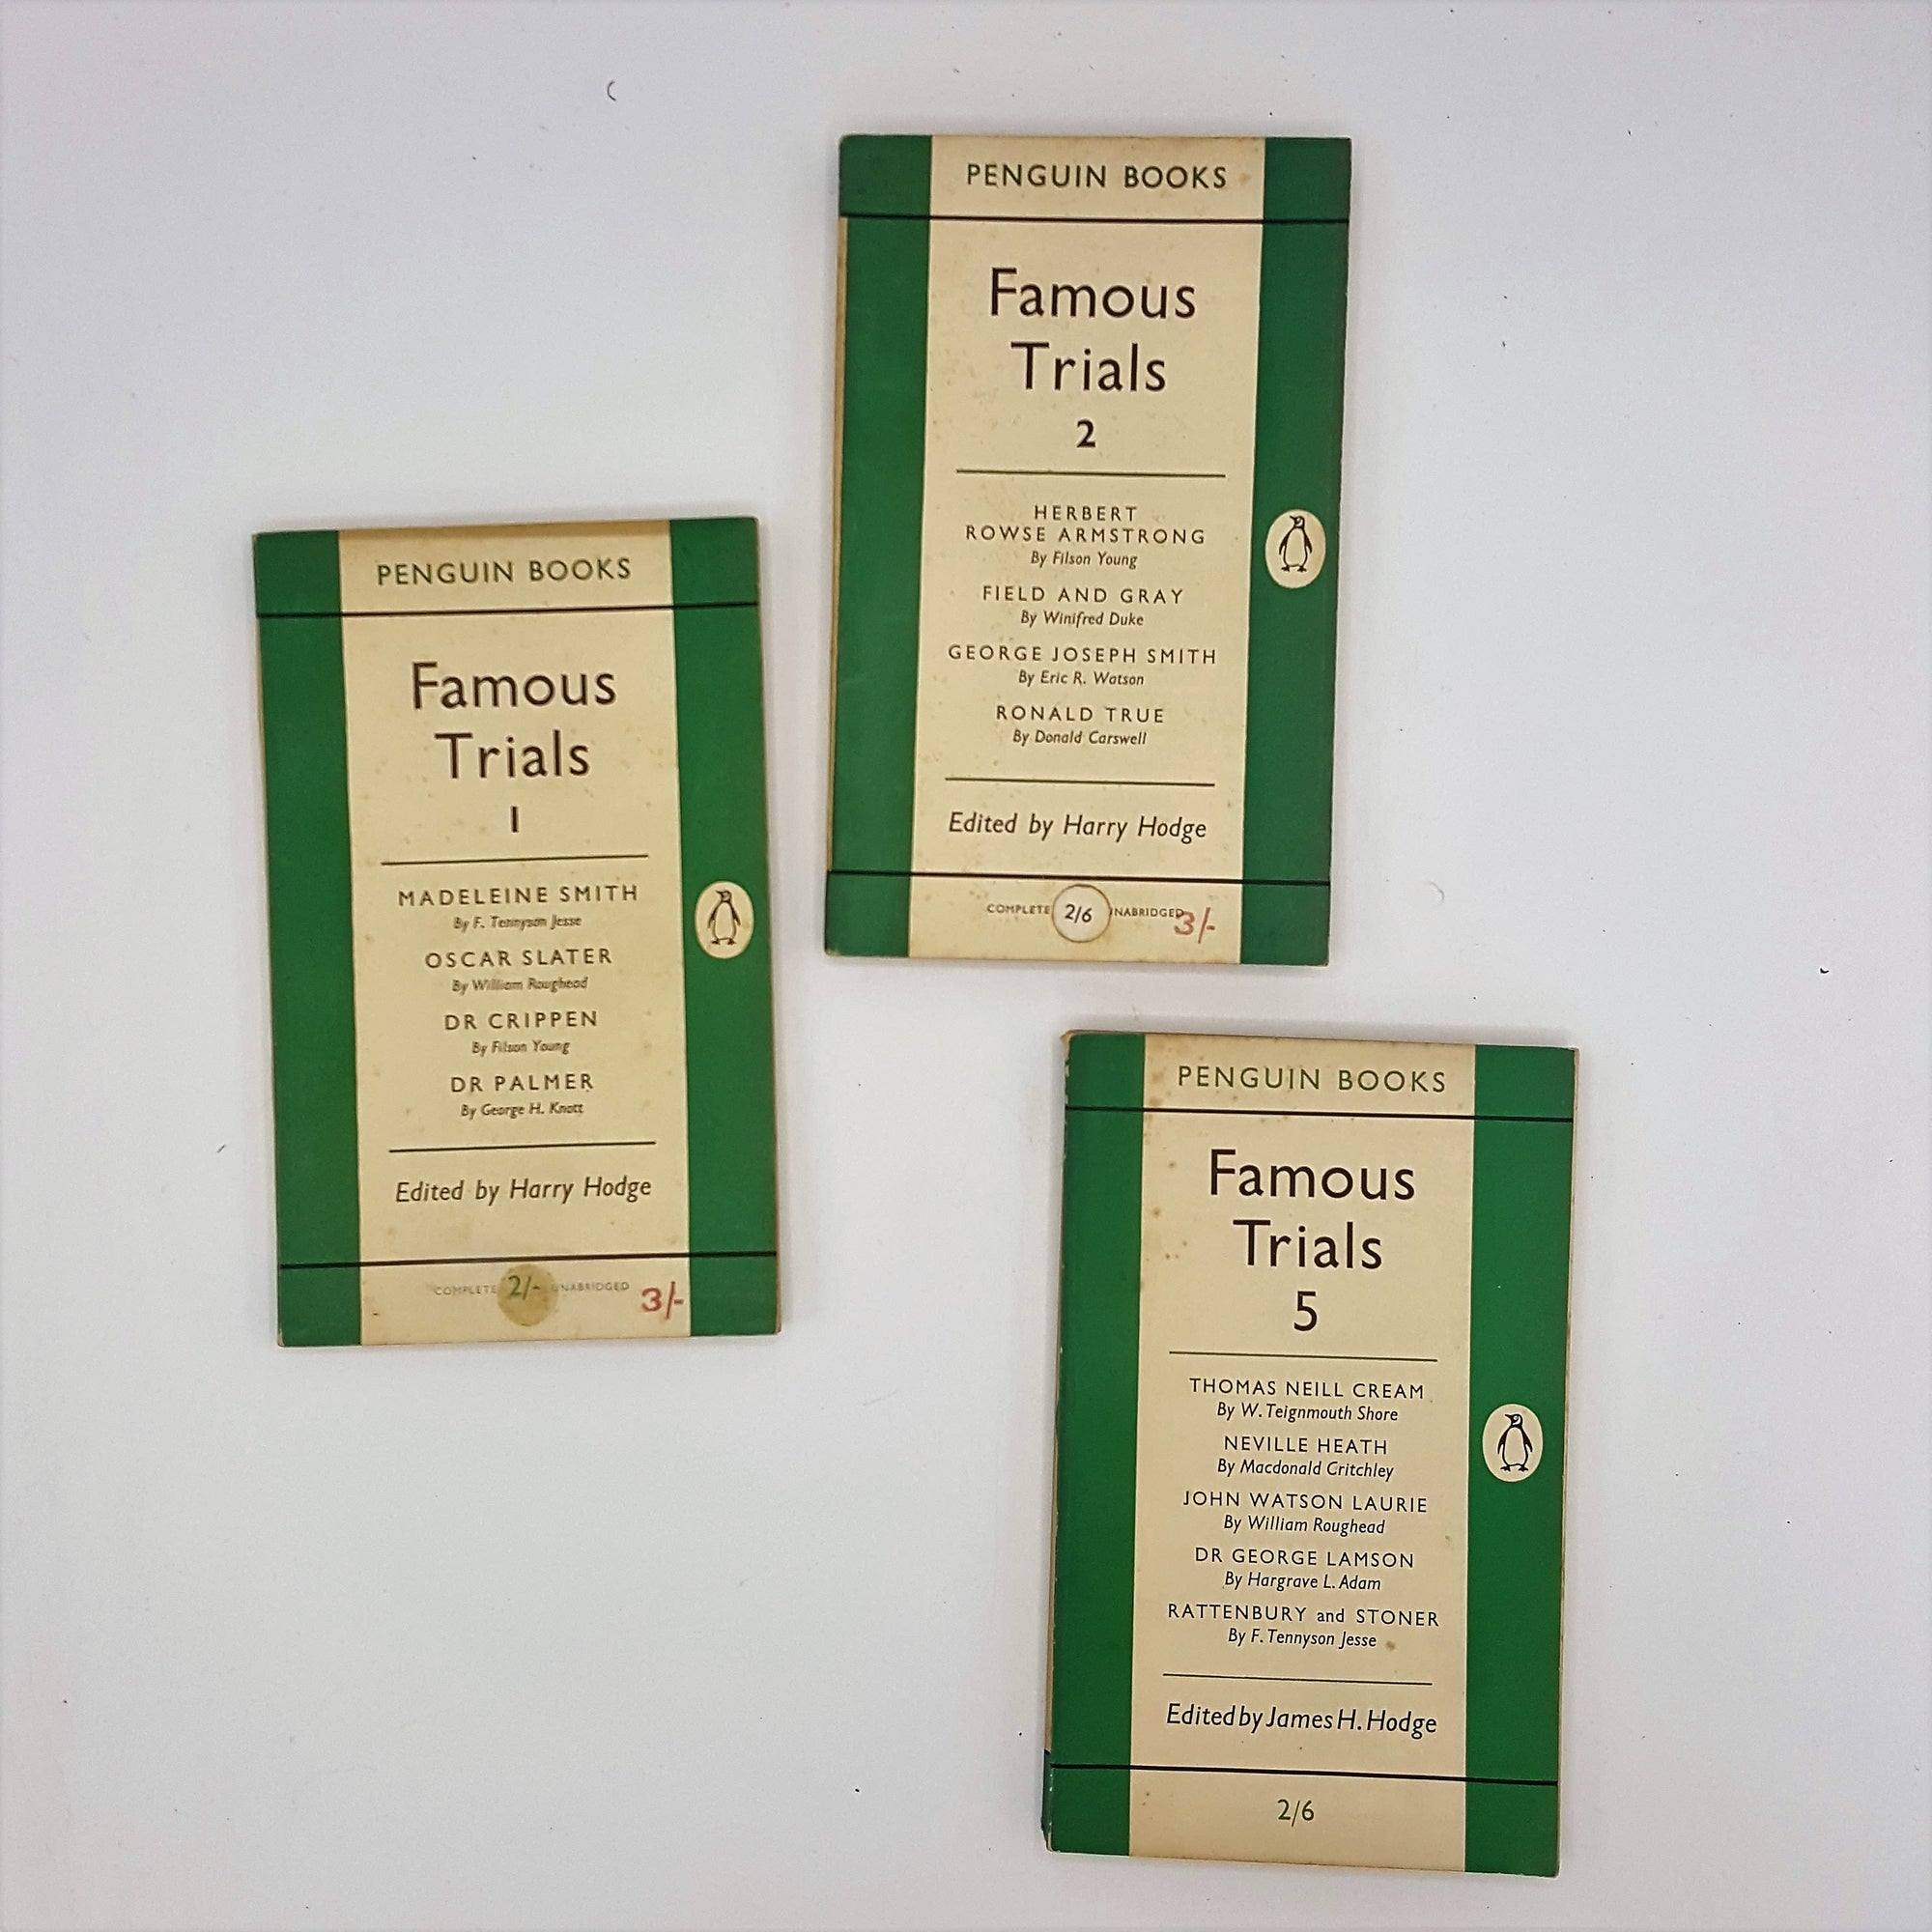 Famous Trials Collection 1954 - 1955